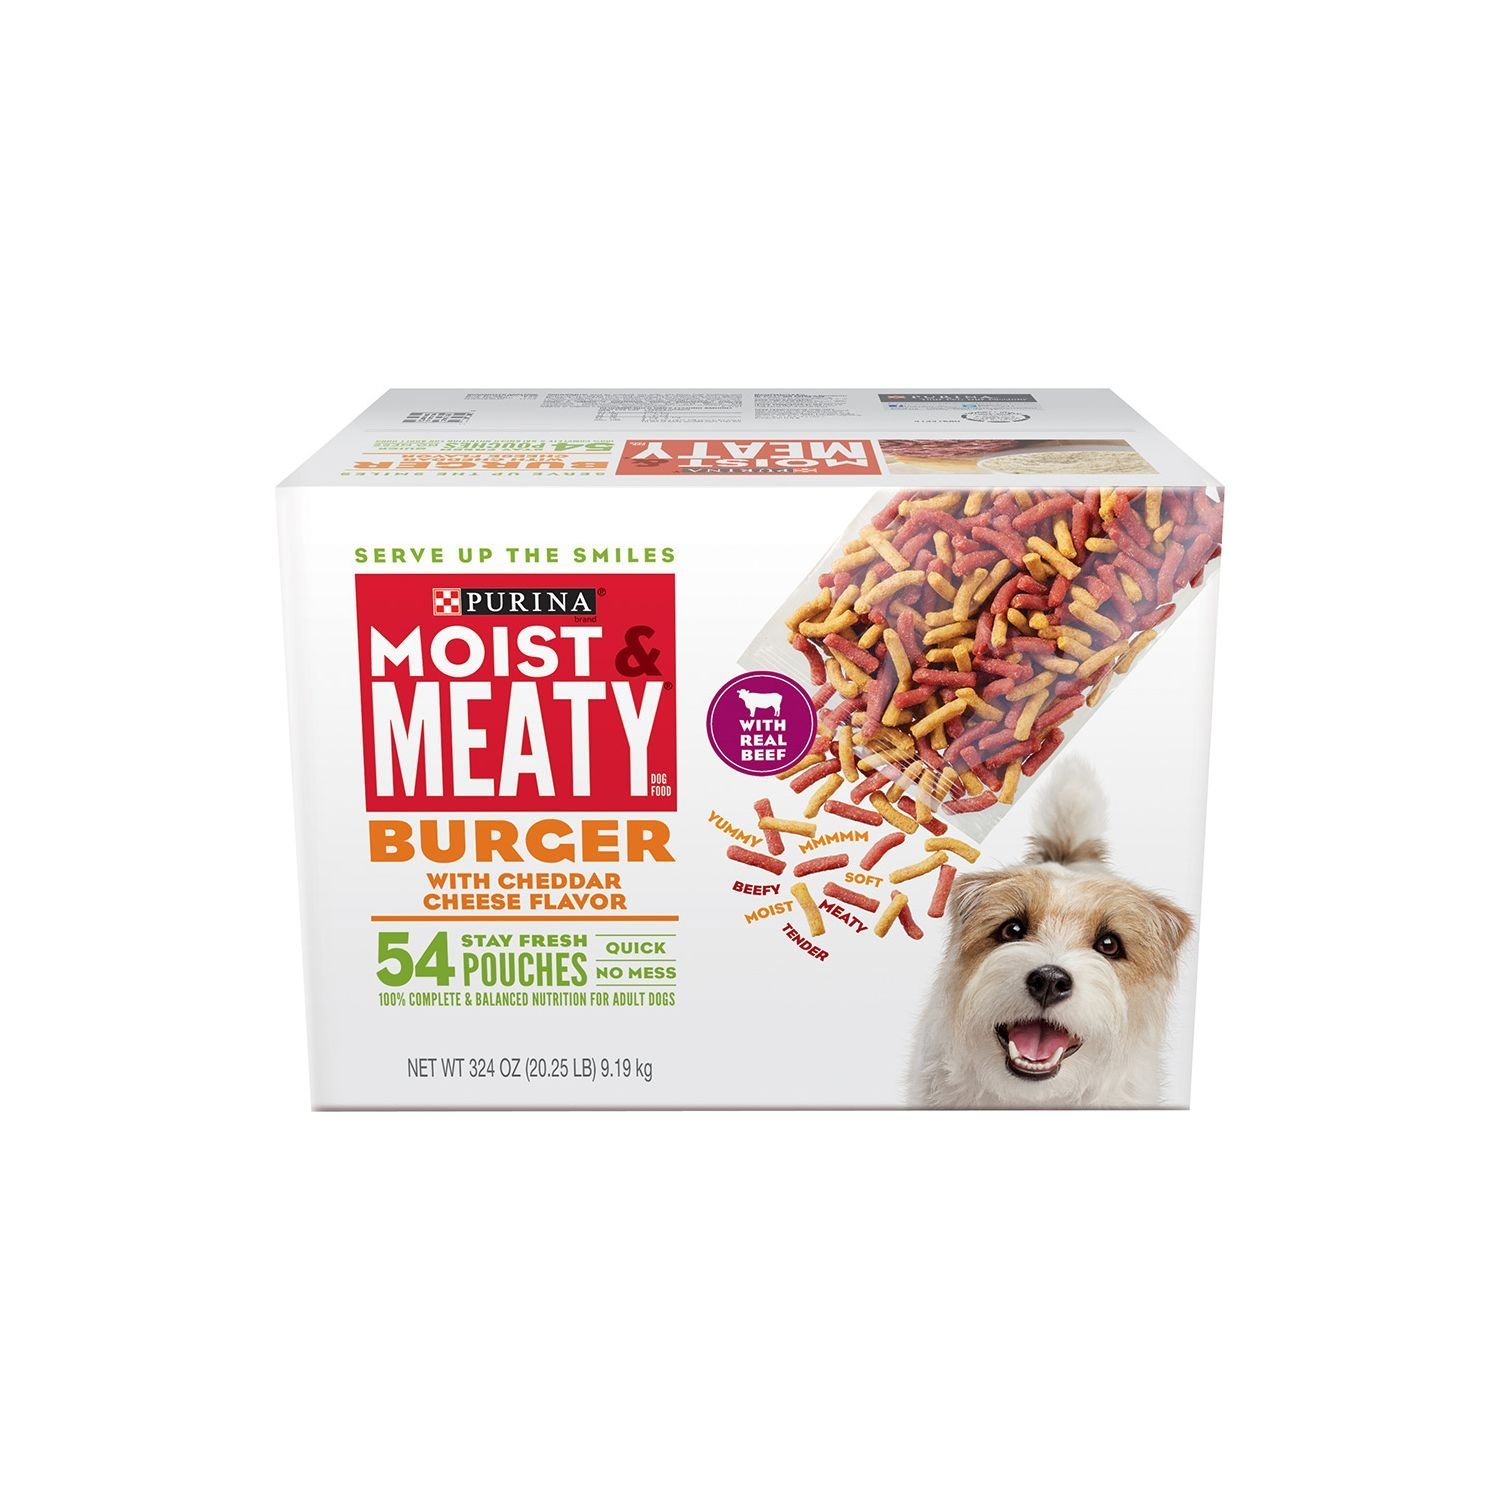 Moist & Meaty Purina, 54 Pouches